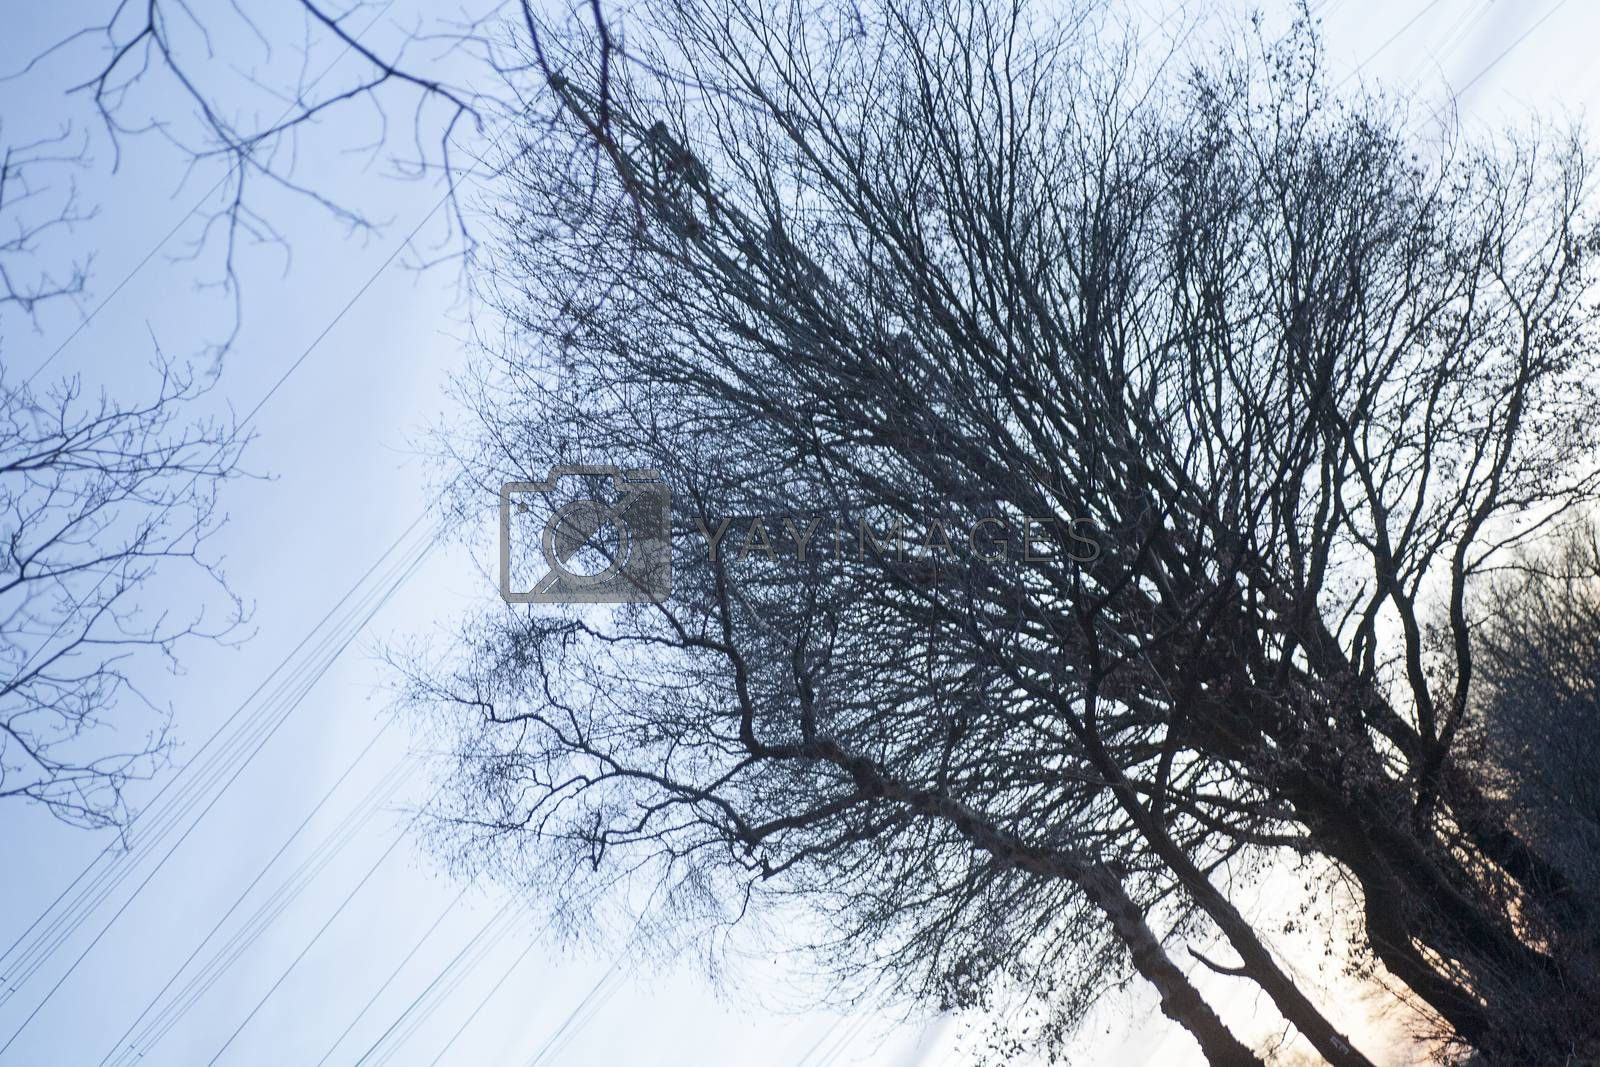 Tree diagonal on electric tower vintage background fine art in high quality prints products by BakalaeroZz Photography